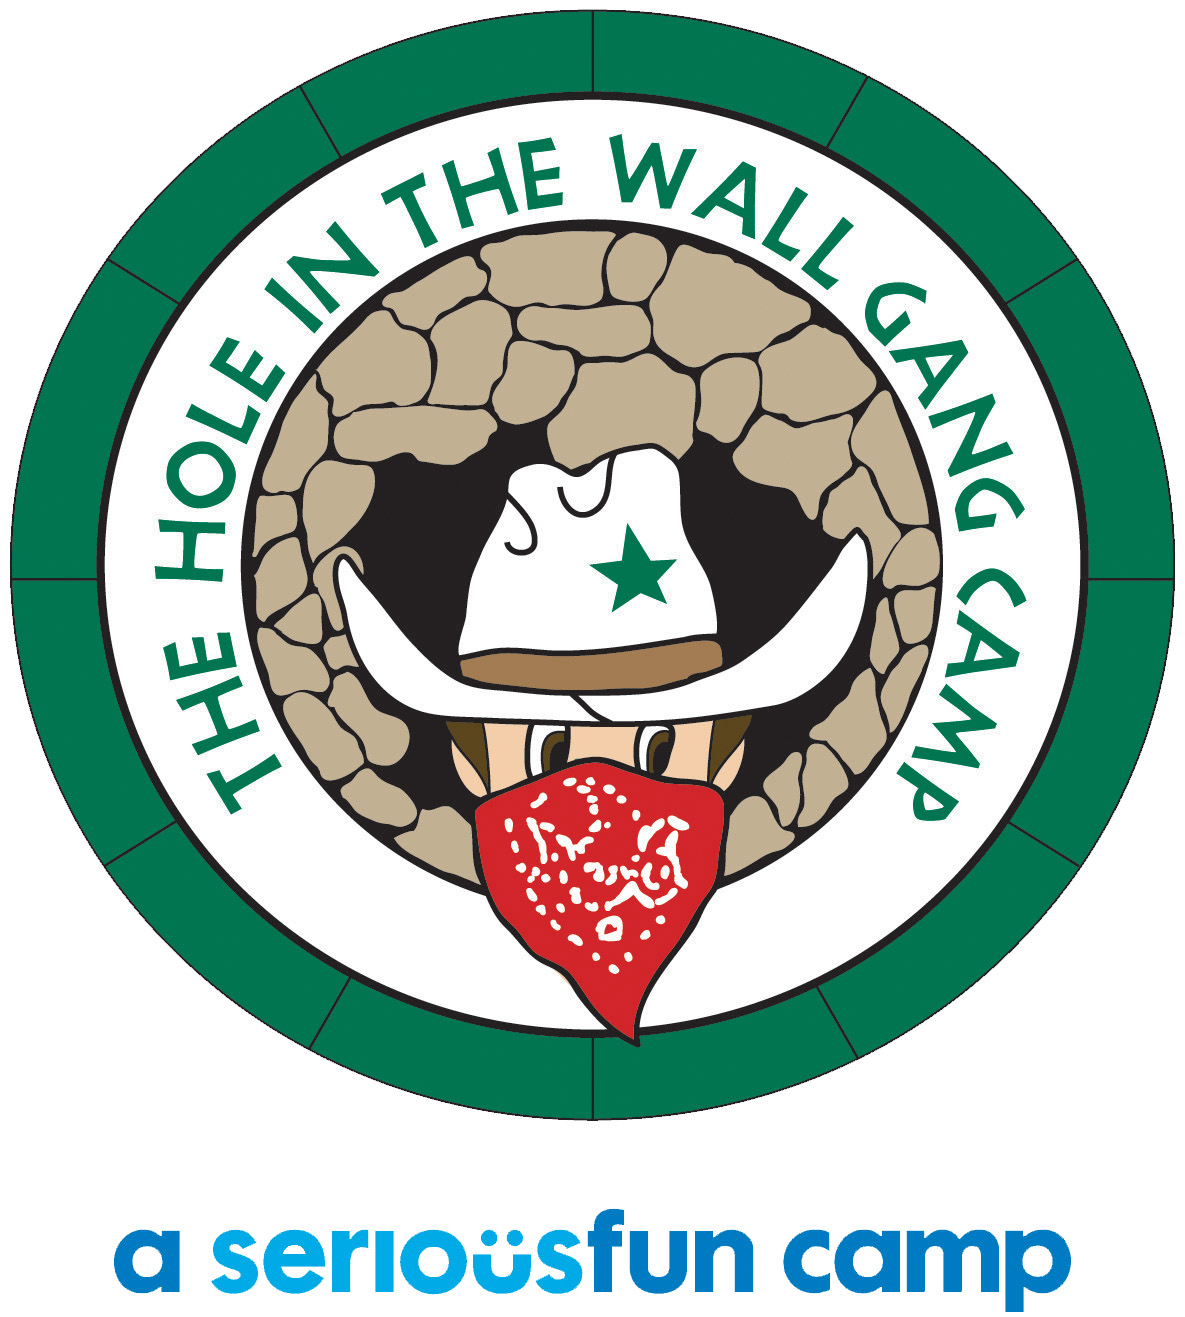 The Hole in the Wall Gang Camp